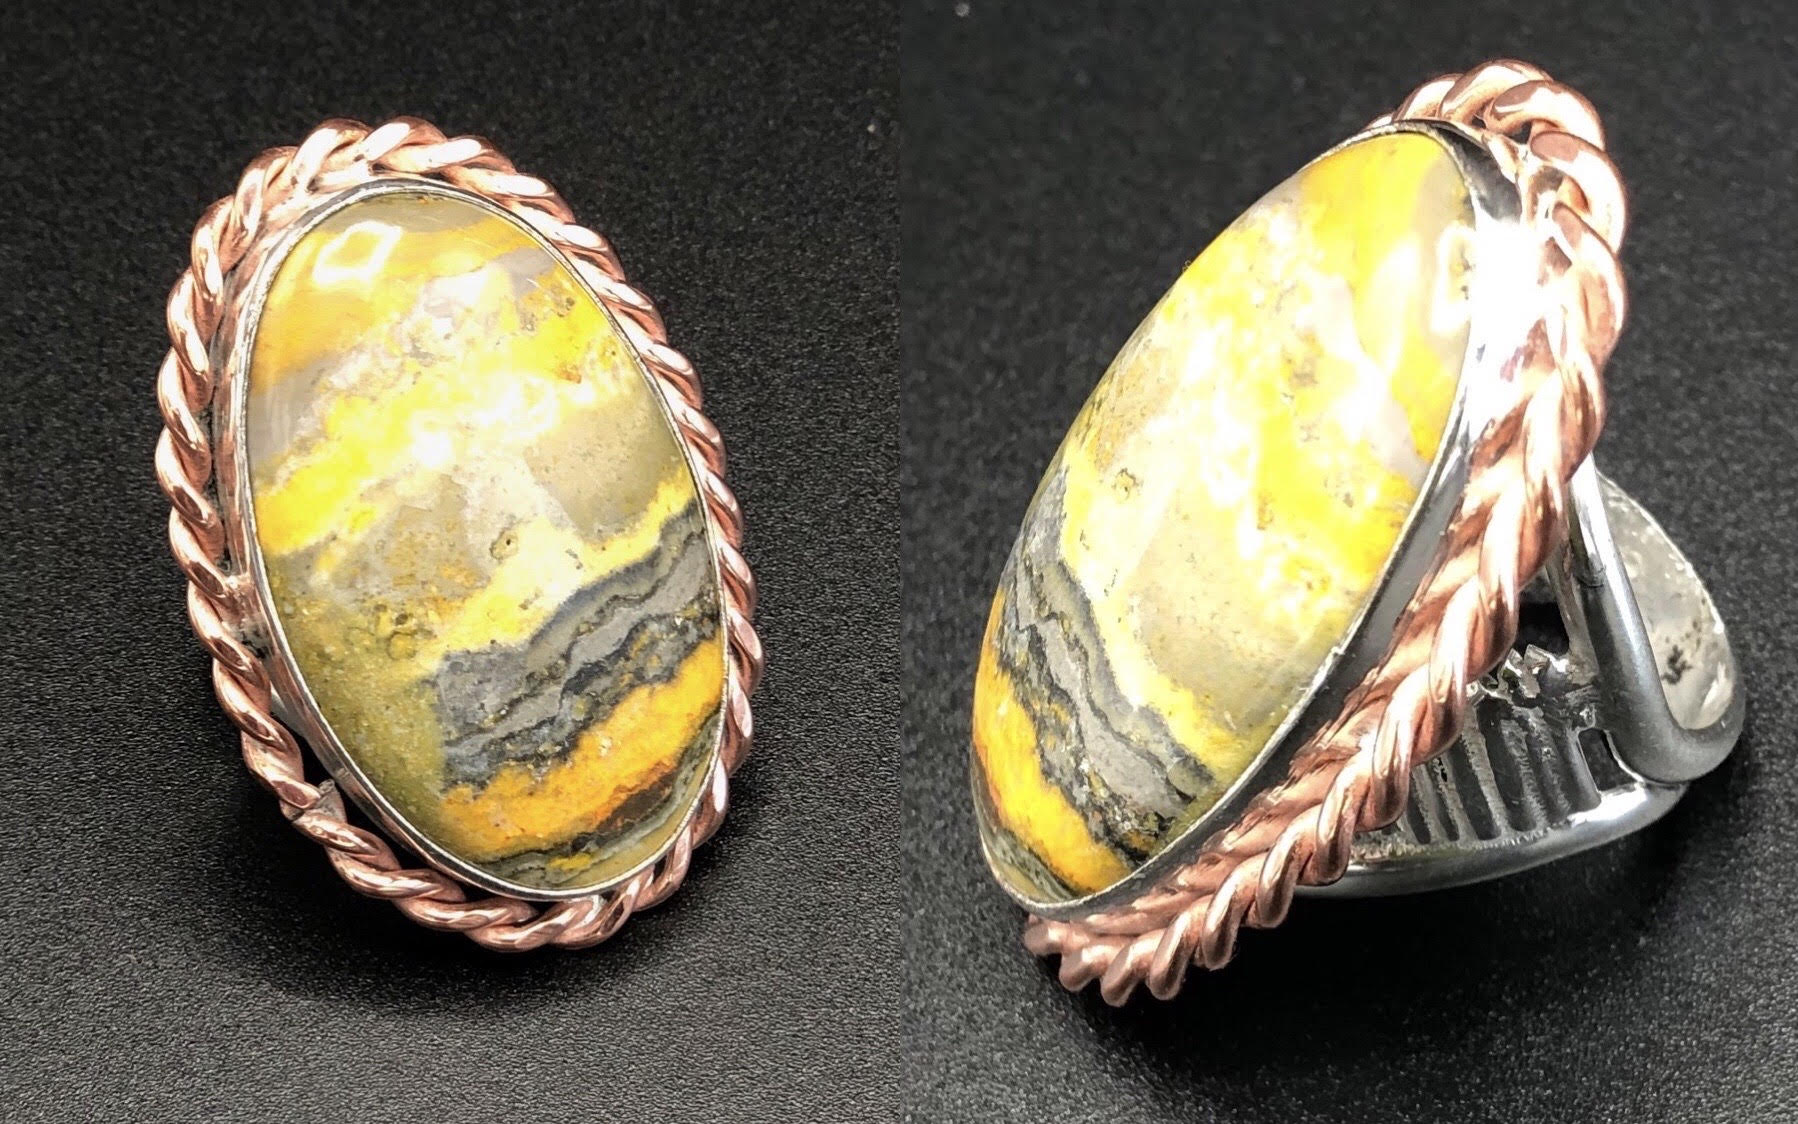 Twisted Cooper Bumble Bee Jasper Ring set in Sterling Silver